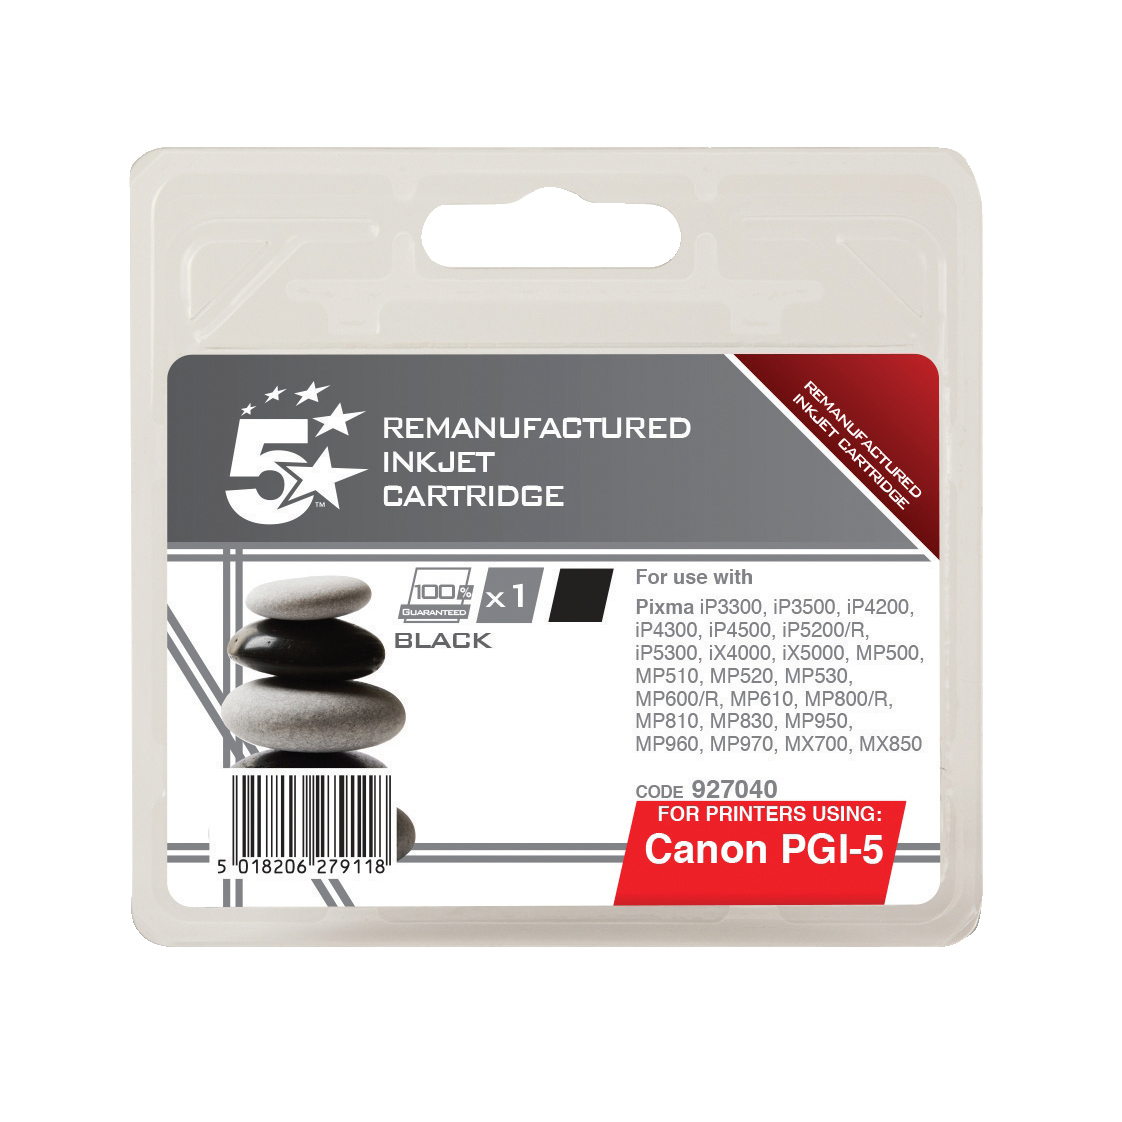 5 Star Office Remanufactured Inkjet Cartridge Page Life 505pp 26ml Black [Canon PGI-5BK Alternative]